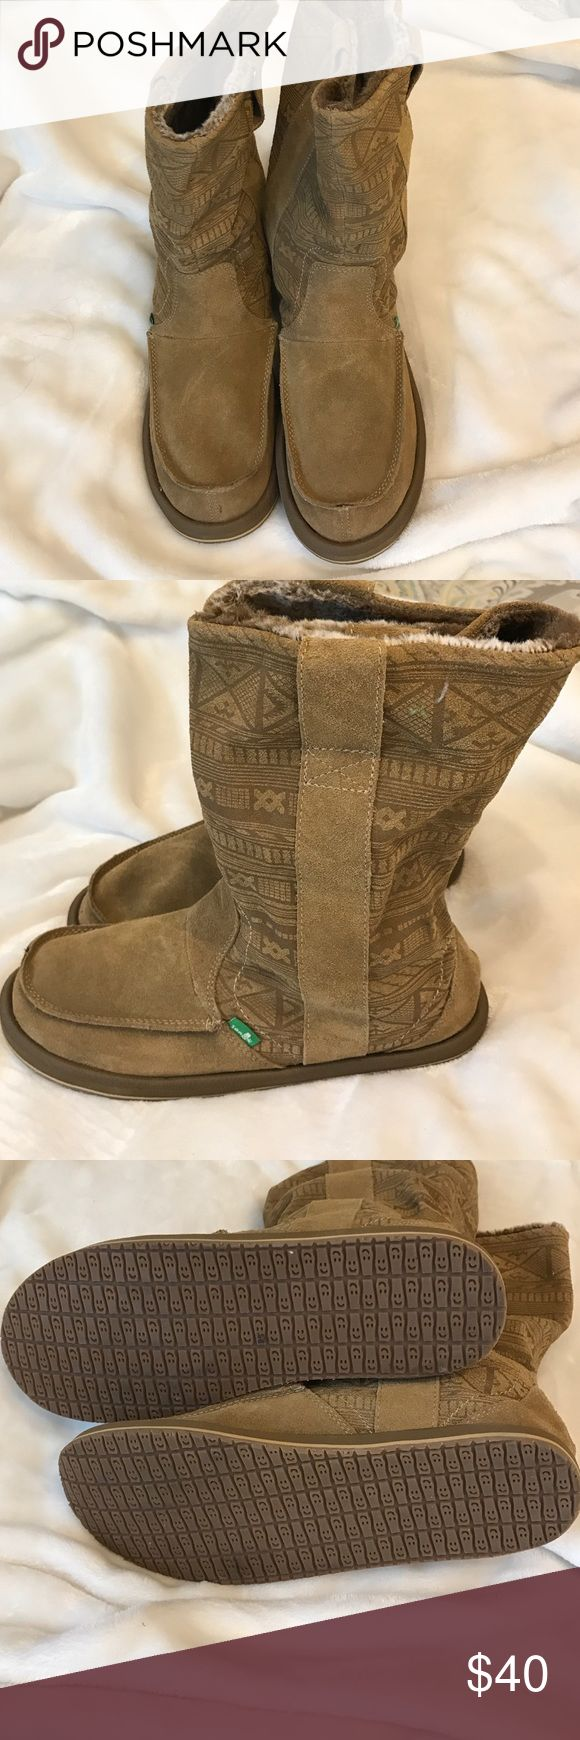 """New (no box) tan leather boots Moccasin tan leather boots approximately 10"""" from top to bottom Sanuk Shoes"""